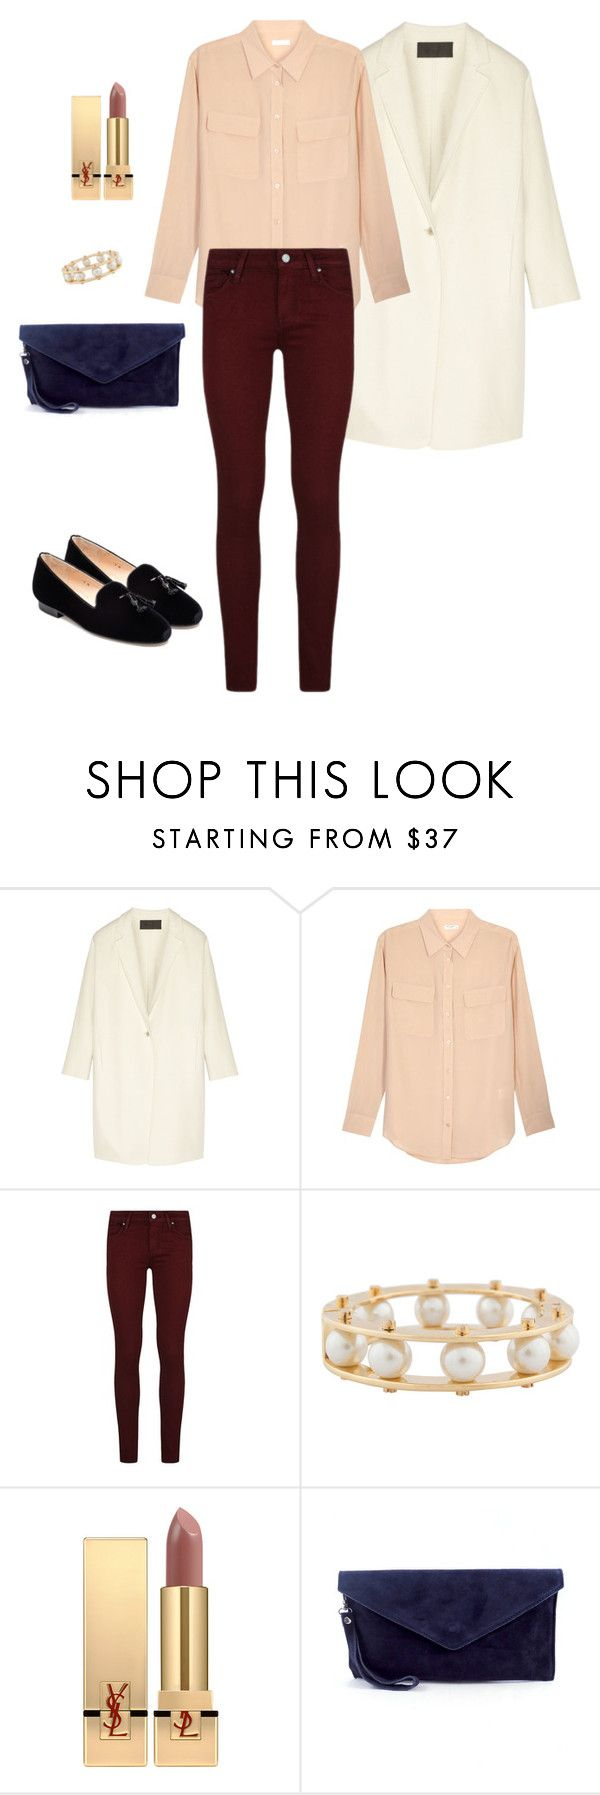 """silk blouse and skinny jeans"" by yuri-writer on Polyvore featuring Donna Karan, Equipment, Paige Denim, Lele Sadoughi, Yves Saint Laurent and Jon Josef"